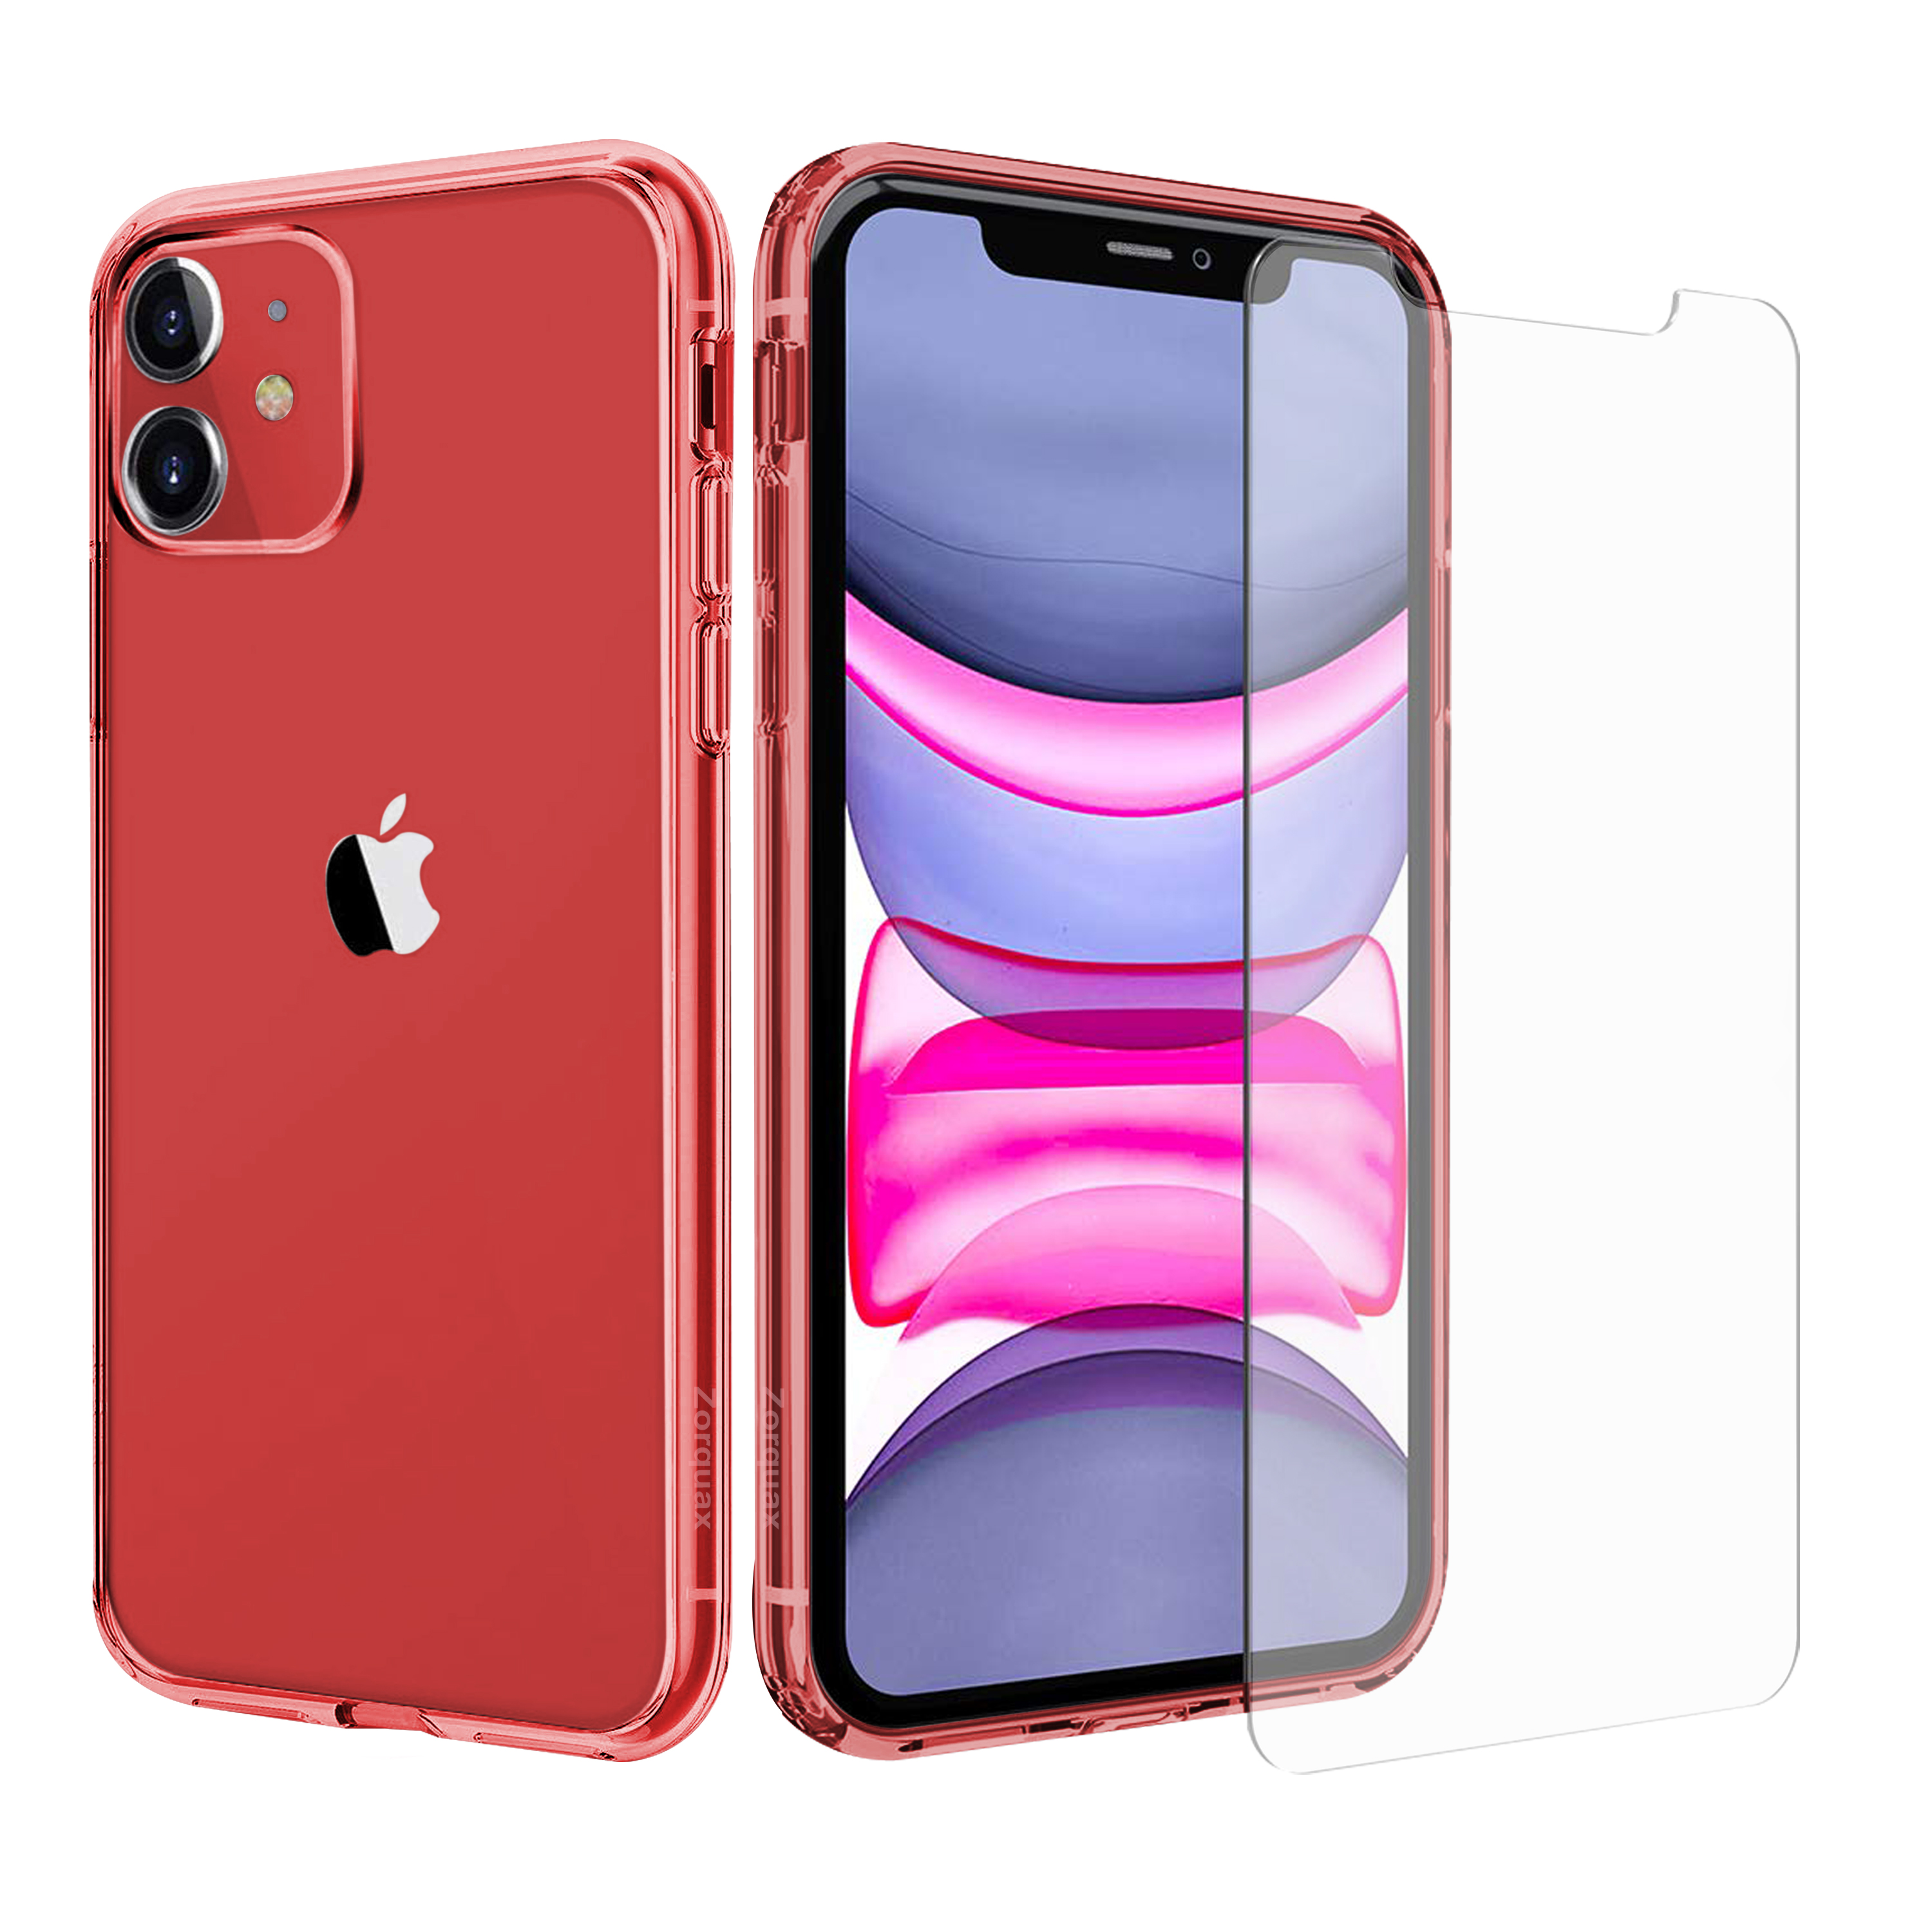 iPhone 11, Pro, Pro Max Zorquax Complete & Clear Protection Pack - Clear Hybrid (Hard PC Back, Soft TPU Sides) Shockproof & Case-on Charging Case with Two (2x) 9H Tempered Glass Screen Protectors